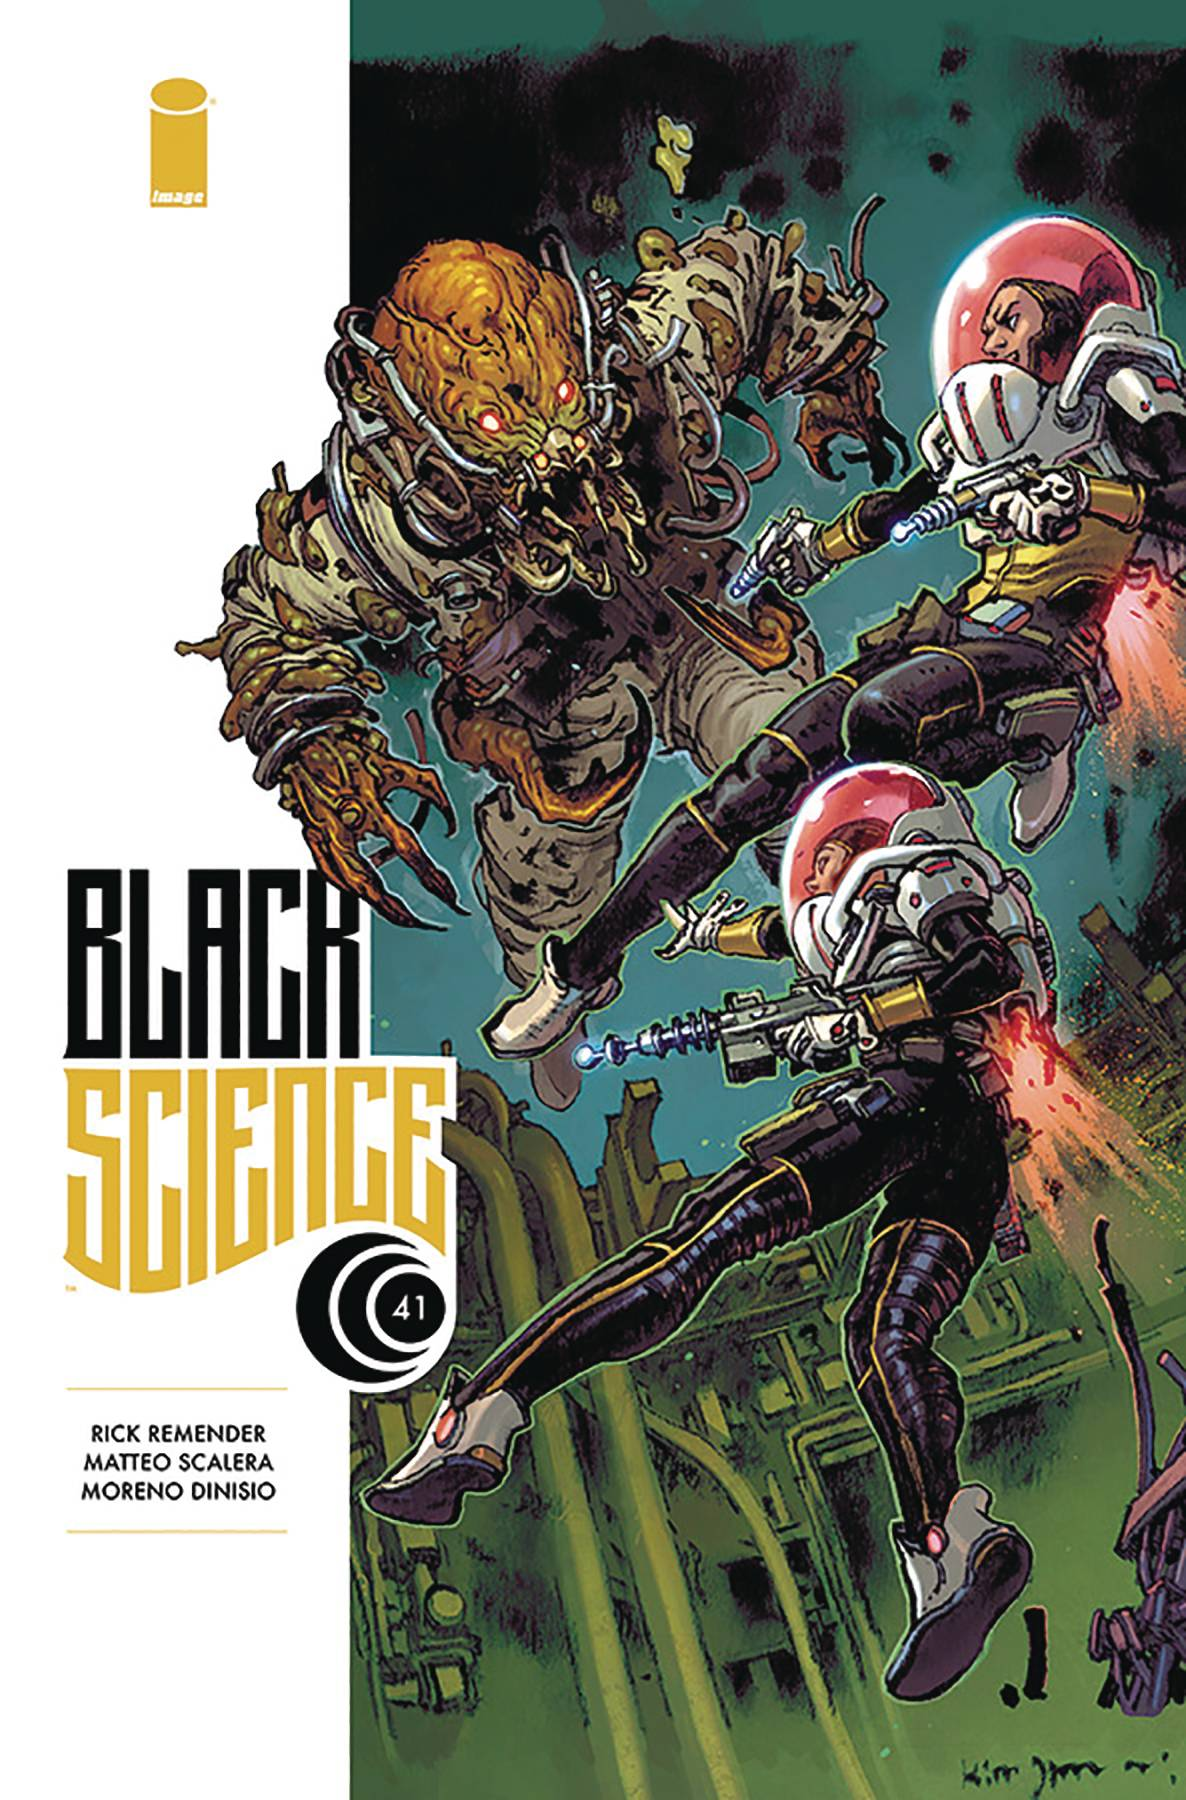 BLACK SCIENCE 41 CVR B GI.jpg